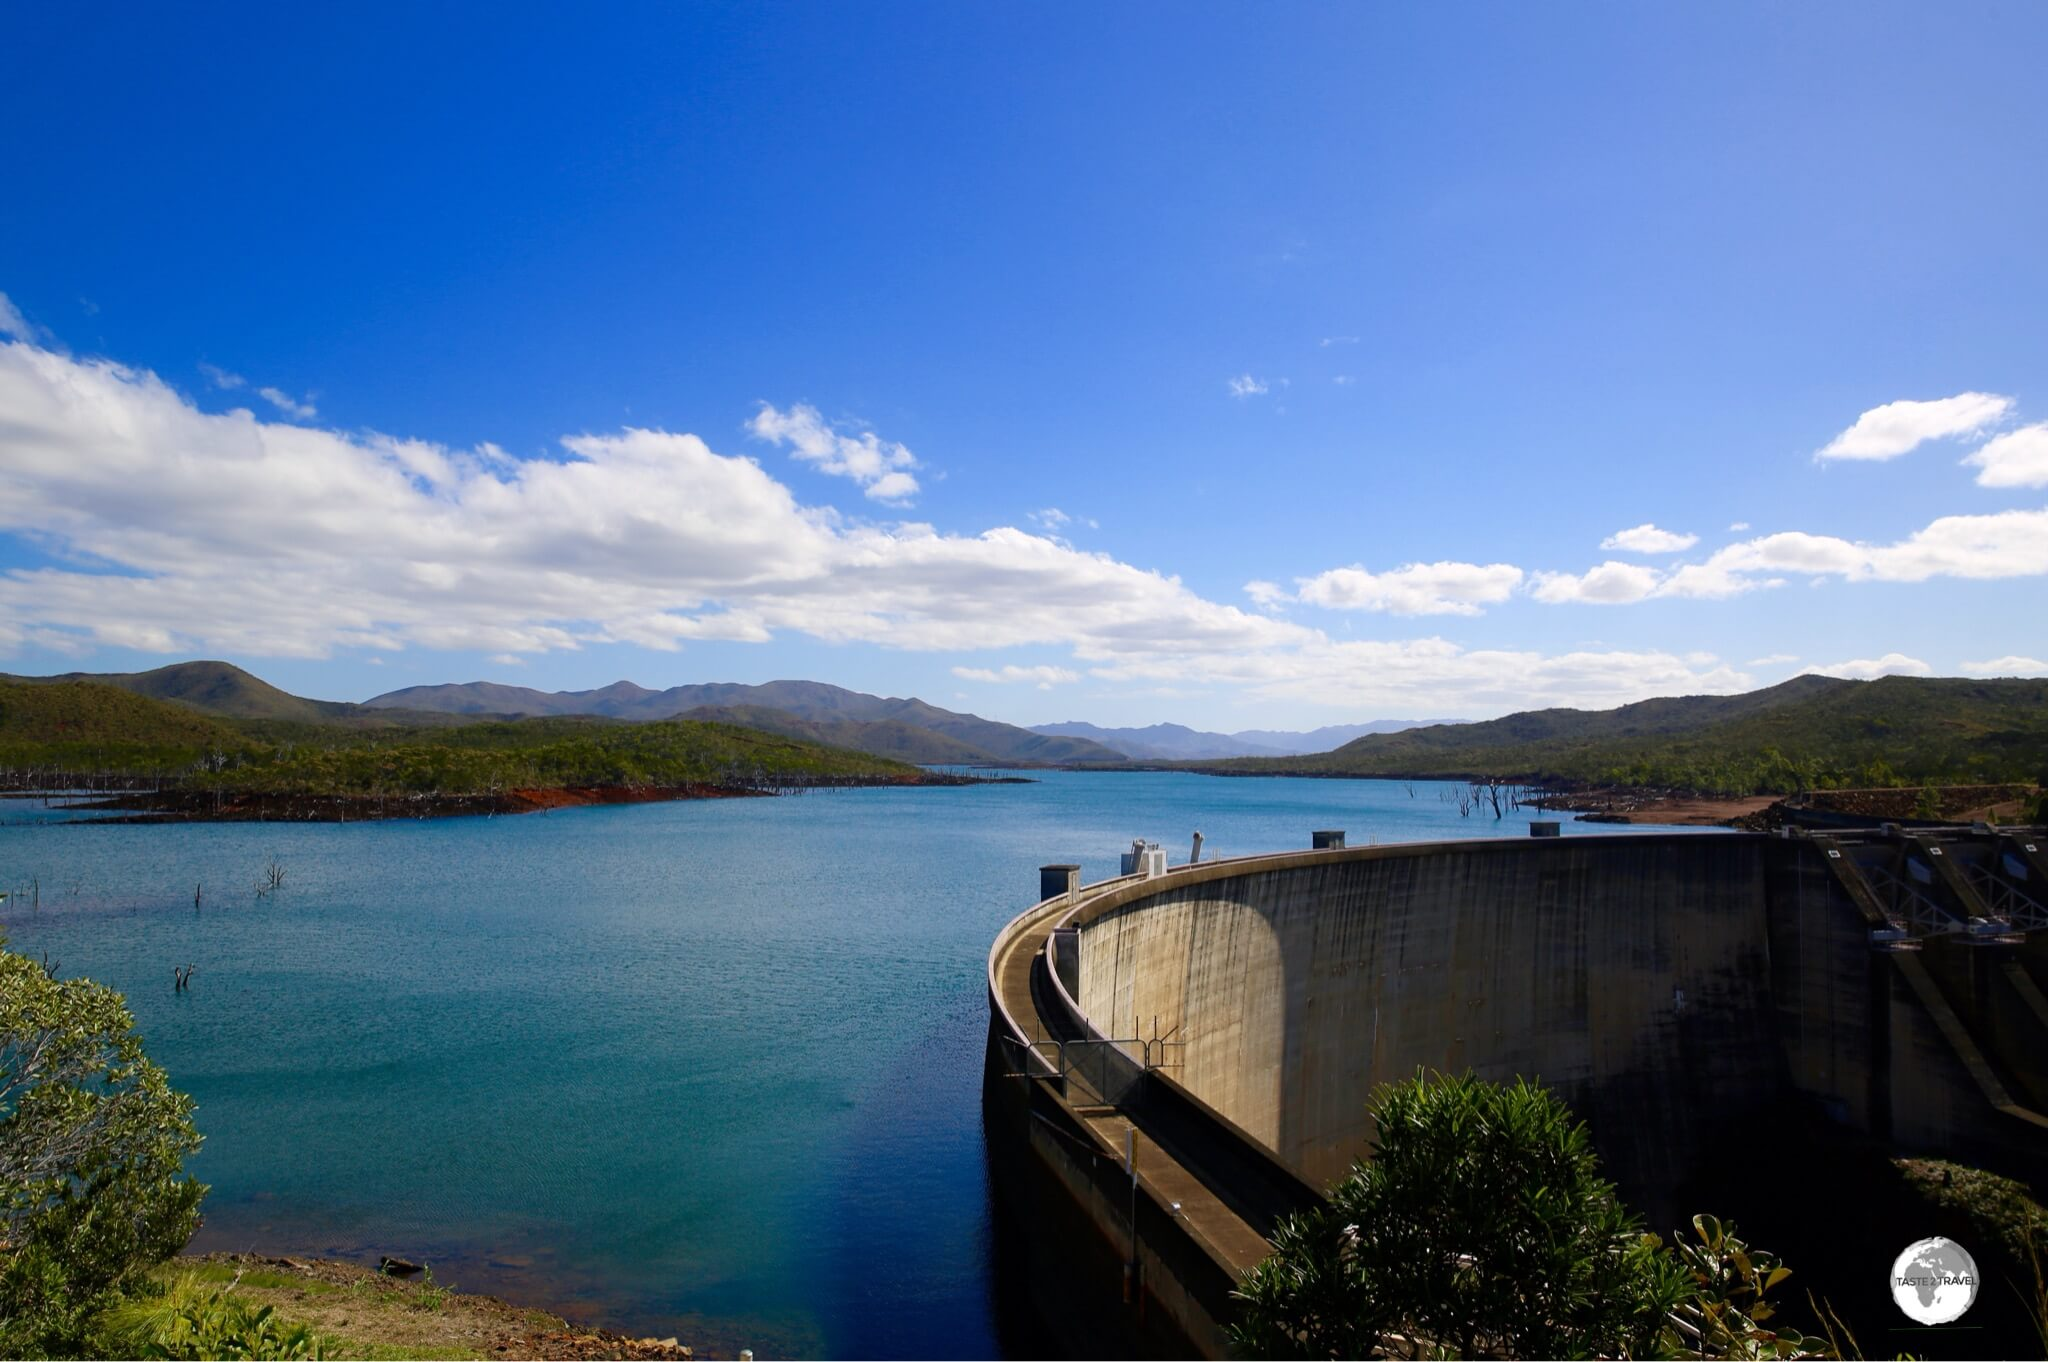 The impressive Yaté Dam was constructed in 1959 to provide power to the SLN Nickel plant in Ducos (Nouméa),